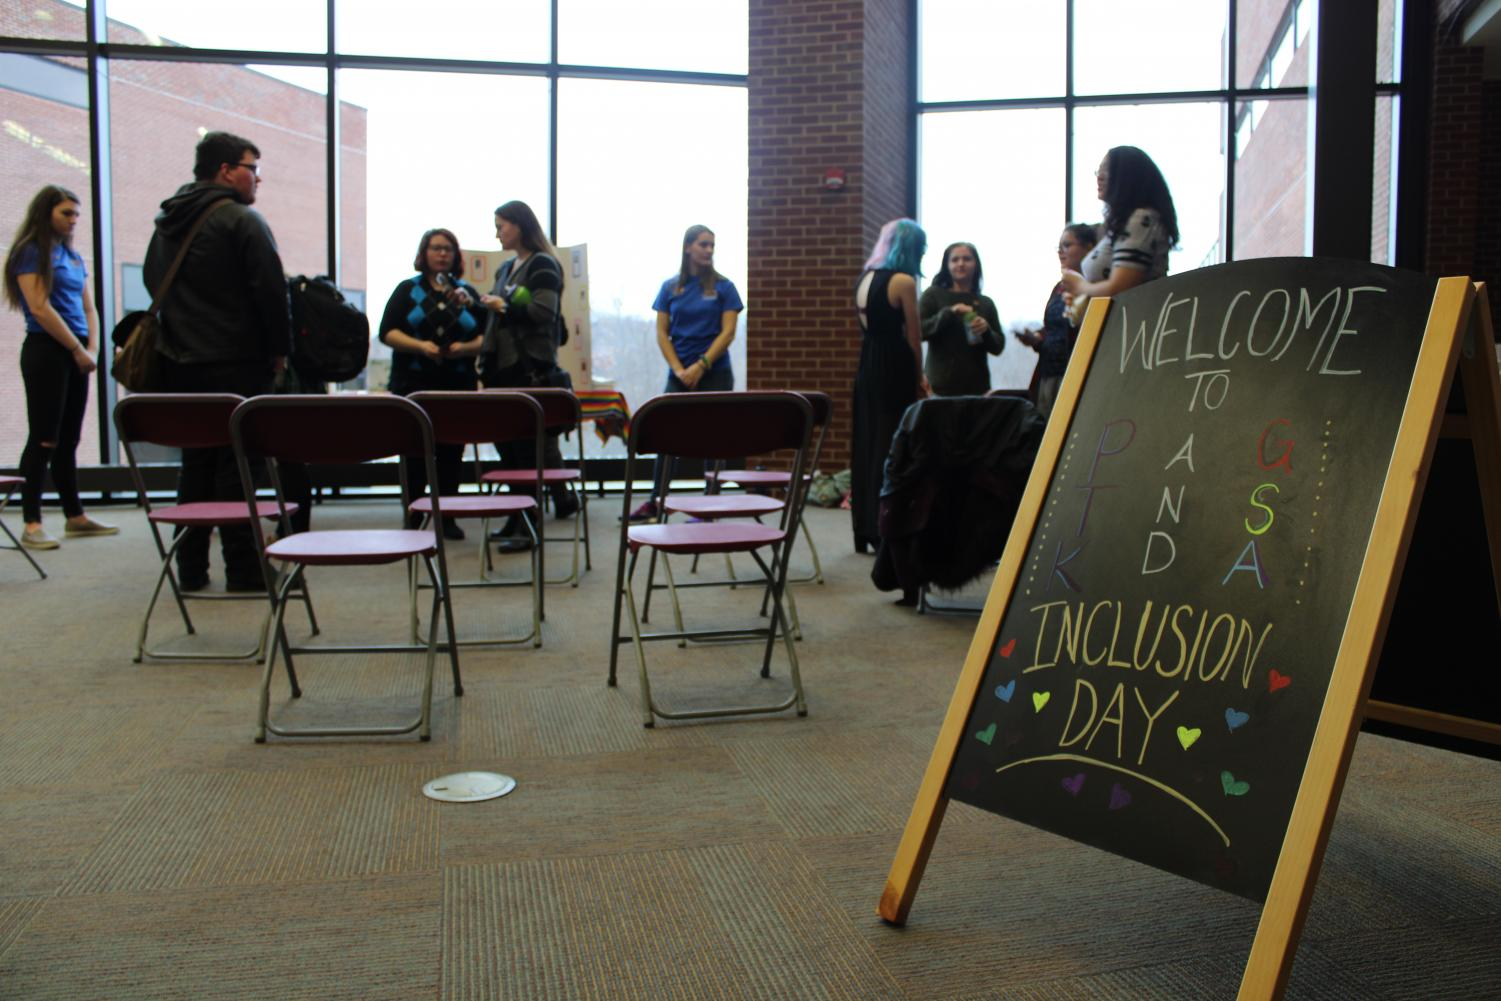 Phi Theta Kappa and the Gay-Straight Alliance hosted an Inclusion Day. Members collected donations for the Phoenix Center and spoke about inclusivity in academia.